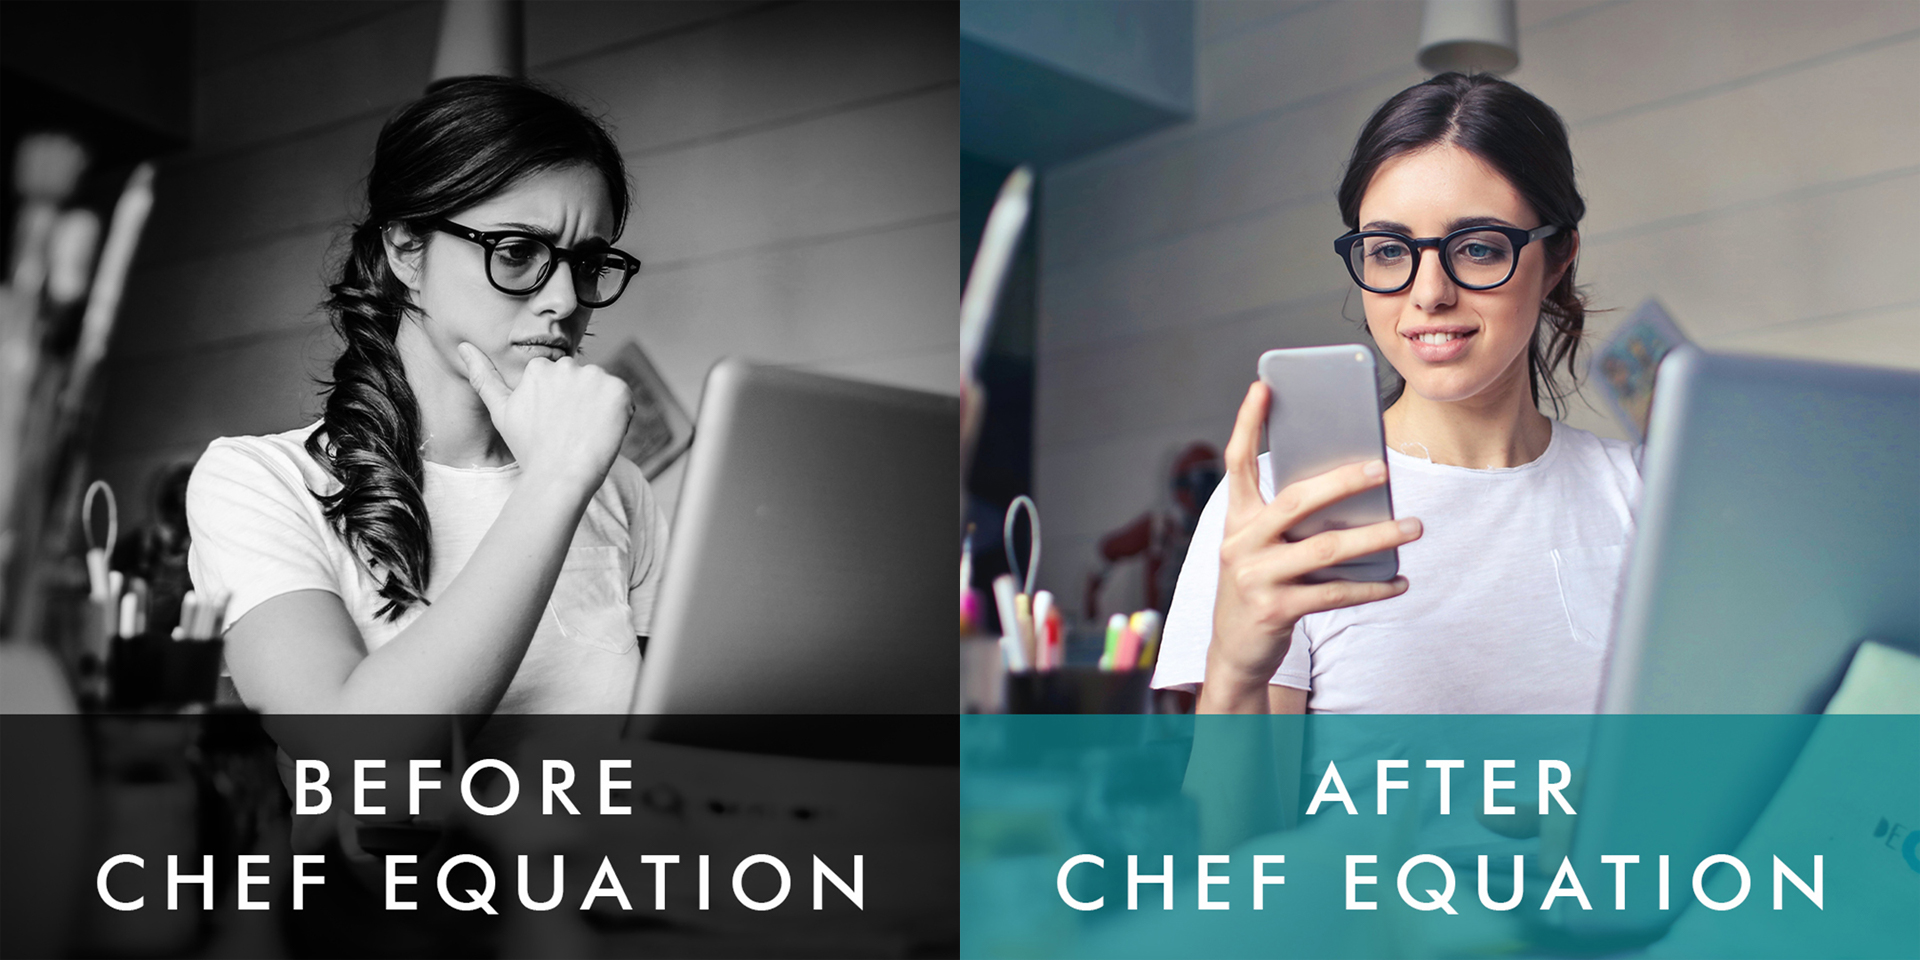 Before ChefEquation. After ChefEquation.